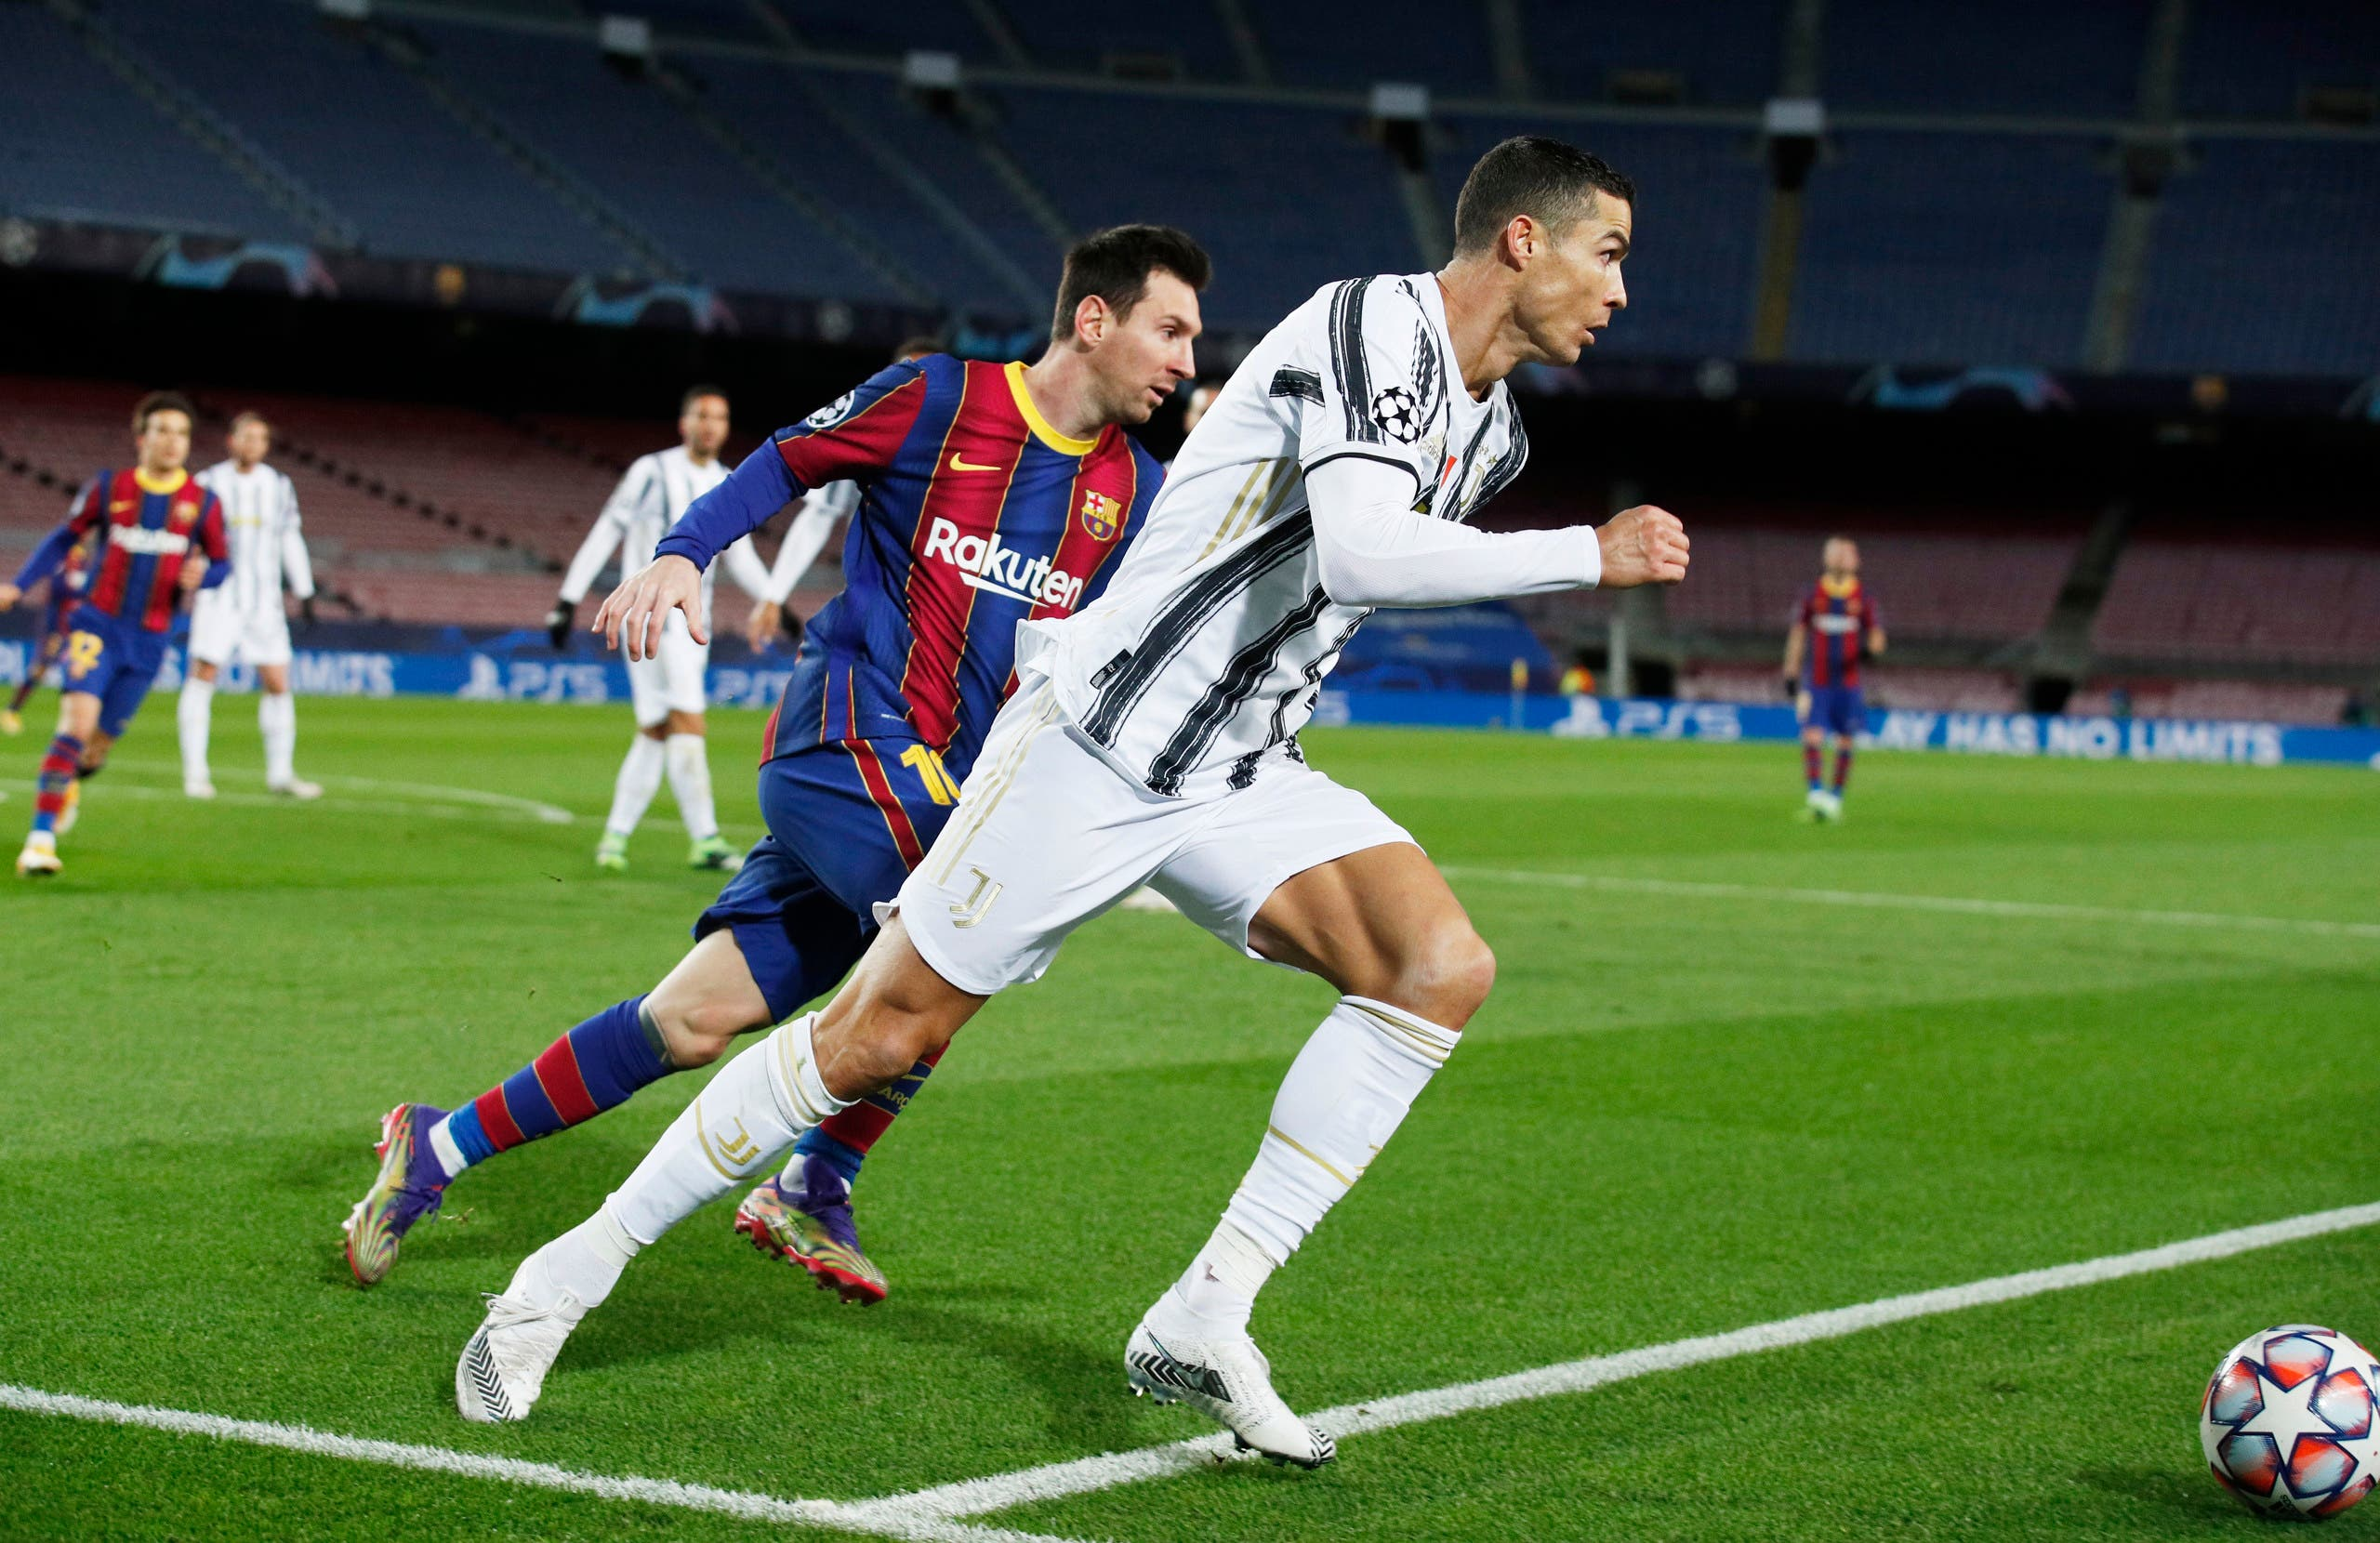 Soccer Football - Champions League - Group G - FC Barcelona v Juventus - Camp Nou, Barcelona, Spain - December 8, 2020 FC Barcelona's Lionel Messi in action with Juventus' Cristiano Ronaldo. (File photo: Reuters)